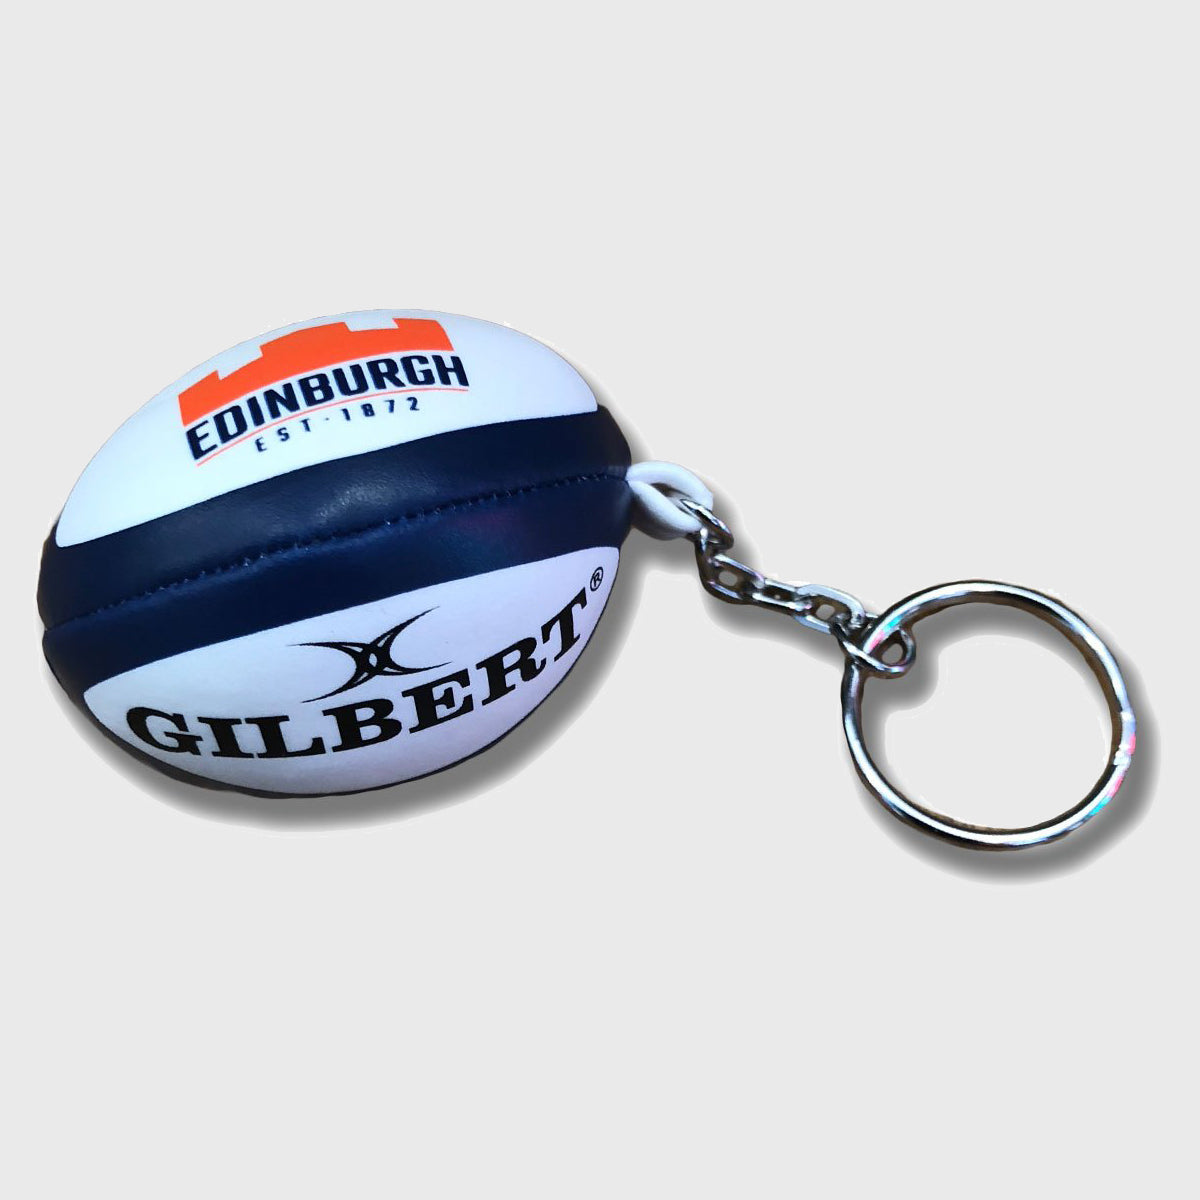 Edinburgh Replica Rugby Ball Keyring White/Navy/Orange - First XV rugbystuff.com